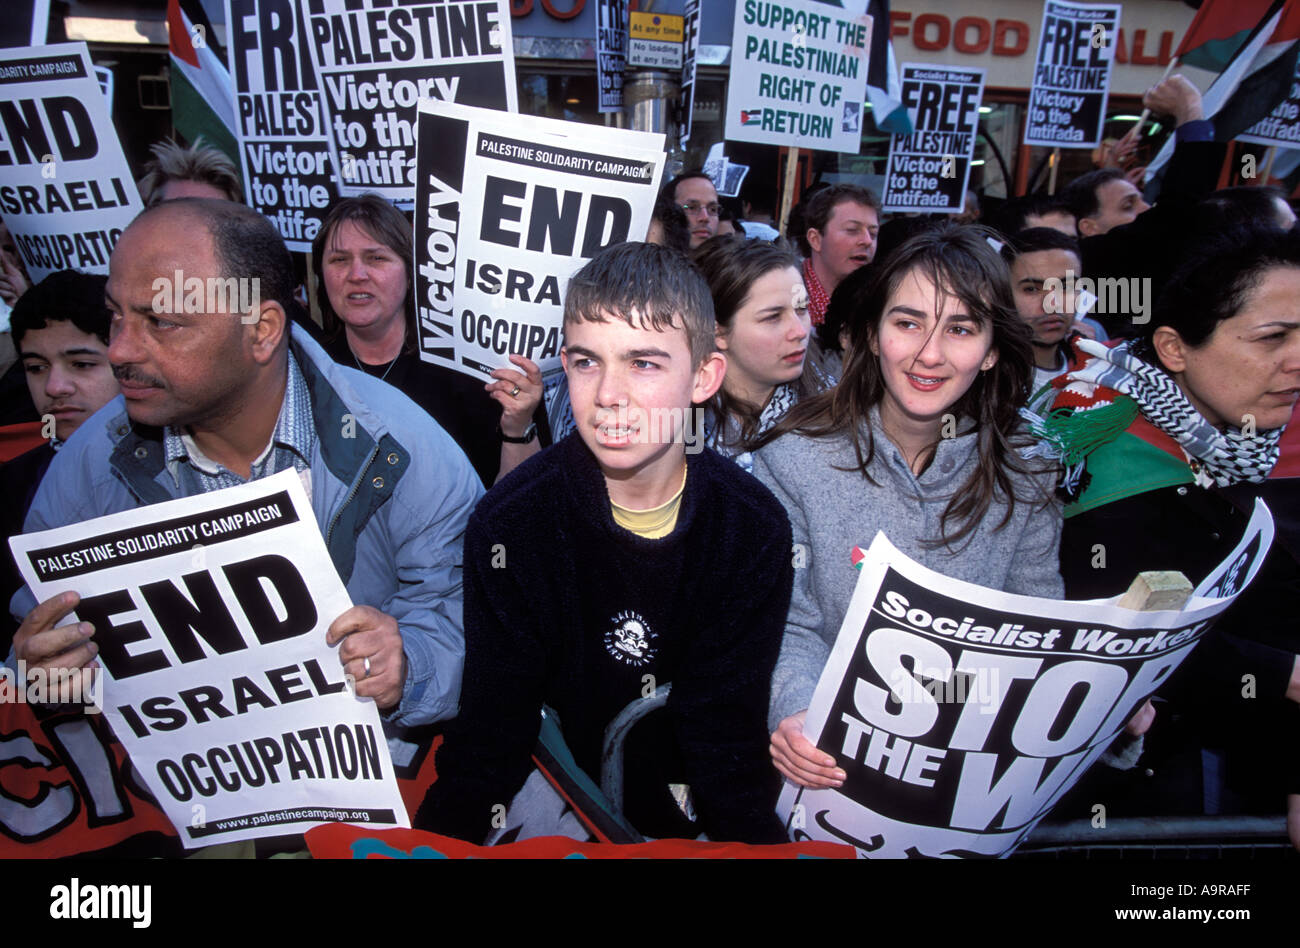 People demonstrating against the Israeli occupation of Palestinian territory London UK - Stock Image